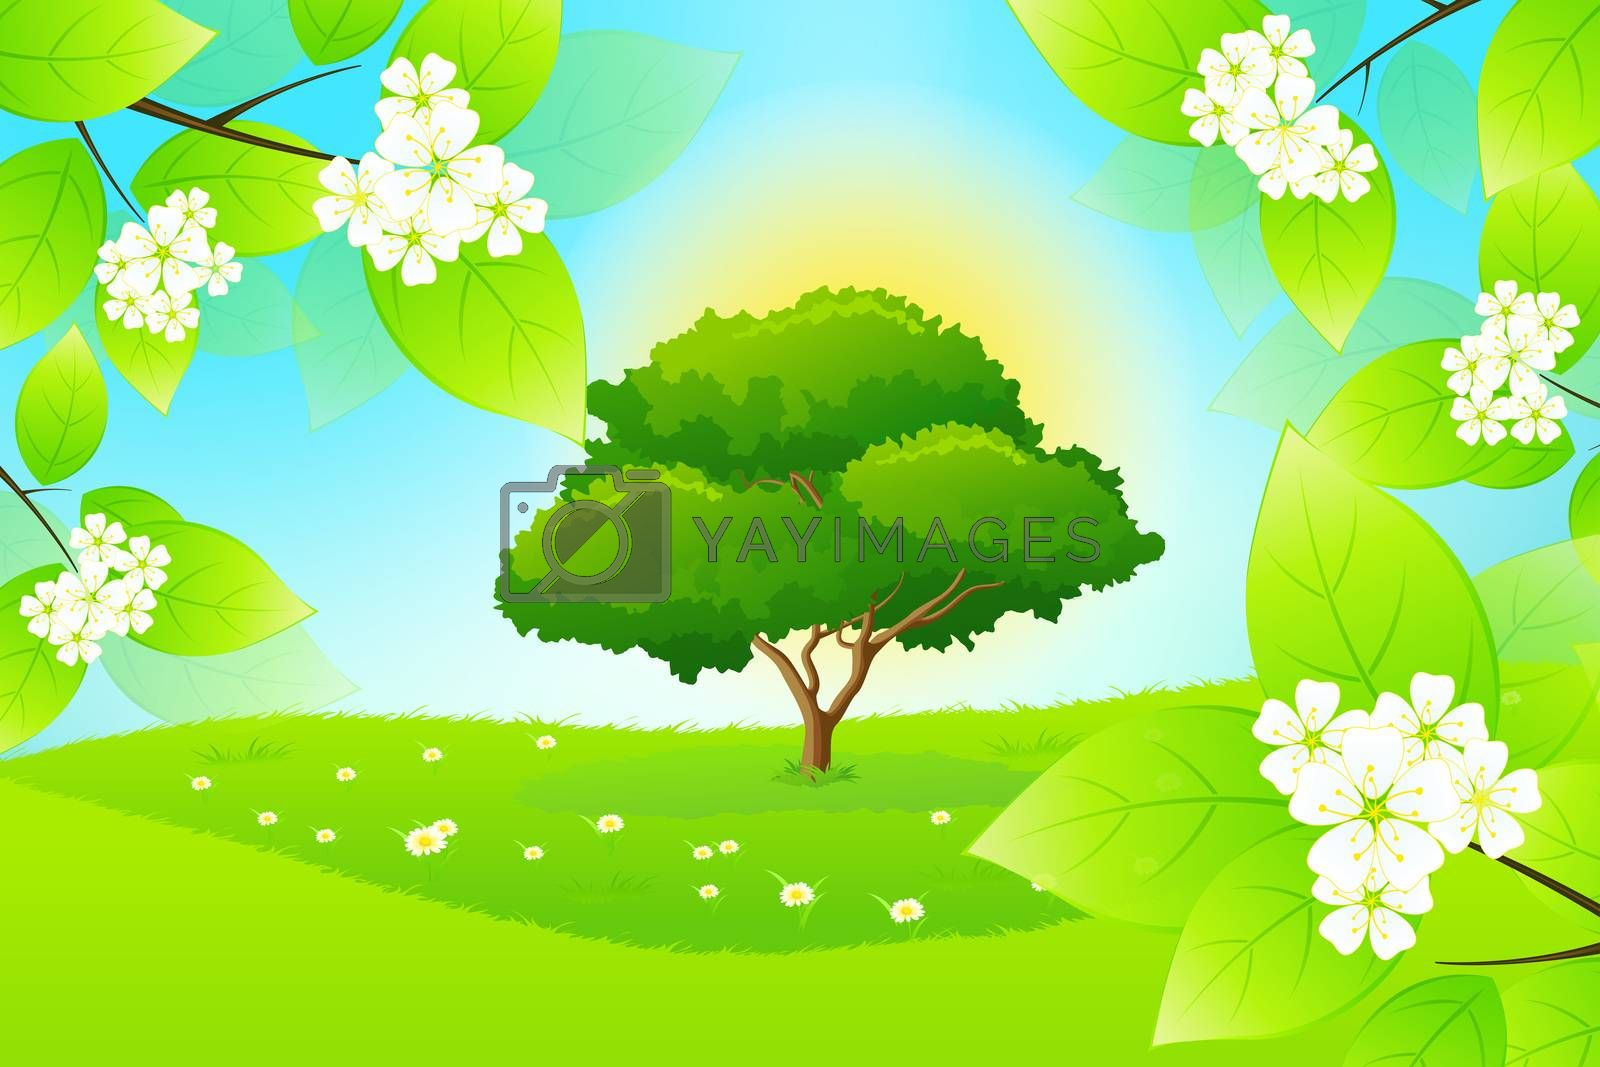 Green Landscape with Flowers by WaD